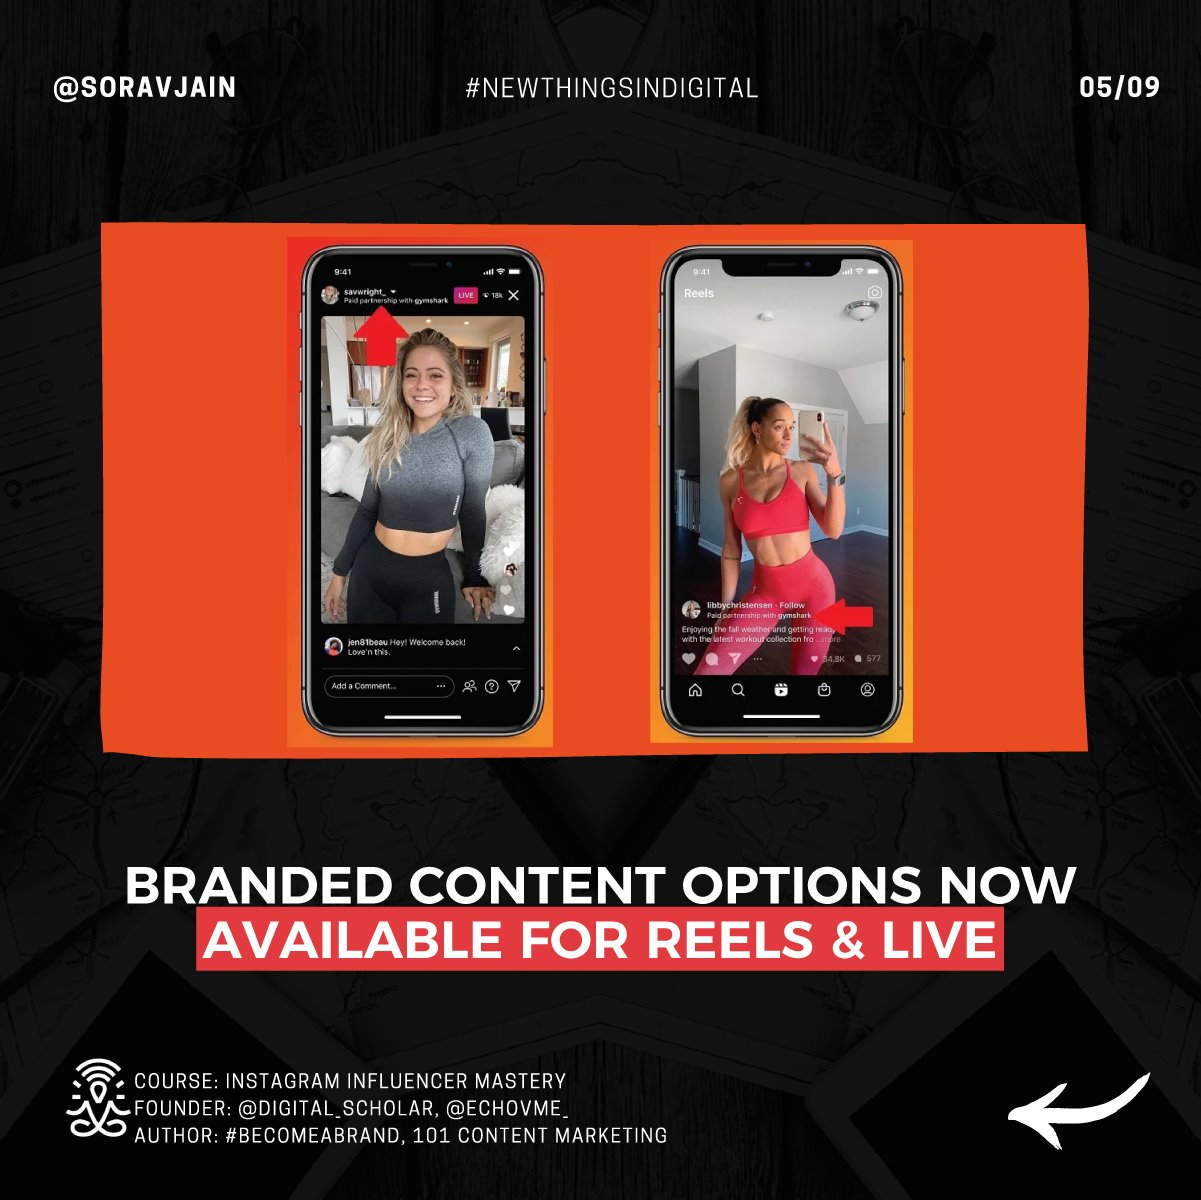 Branded content options now available for Reels & Live